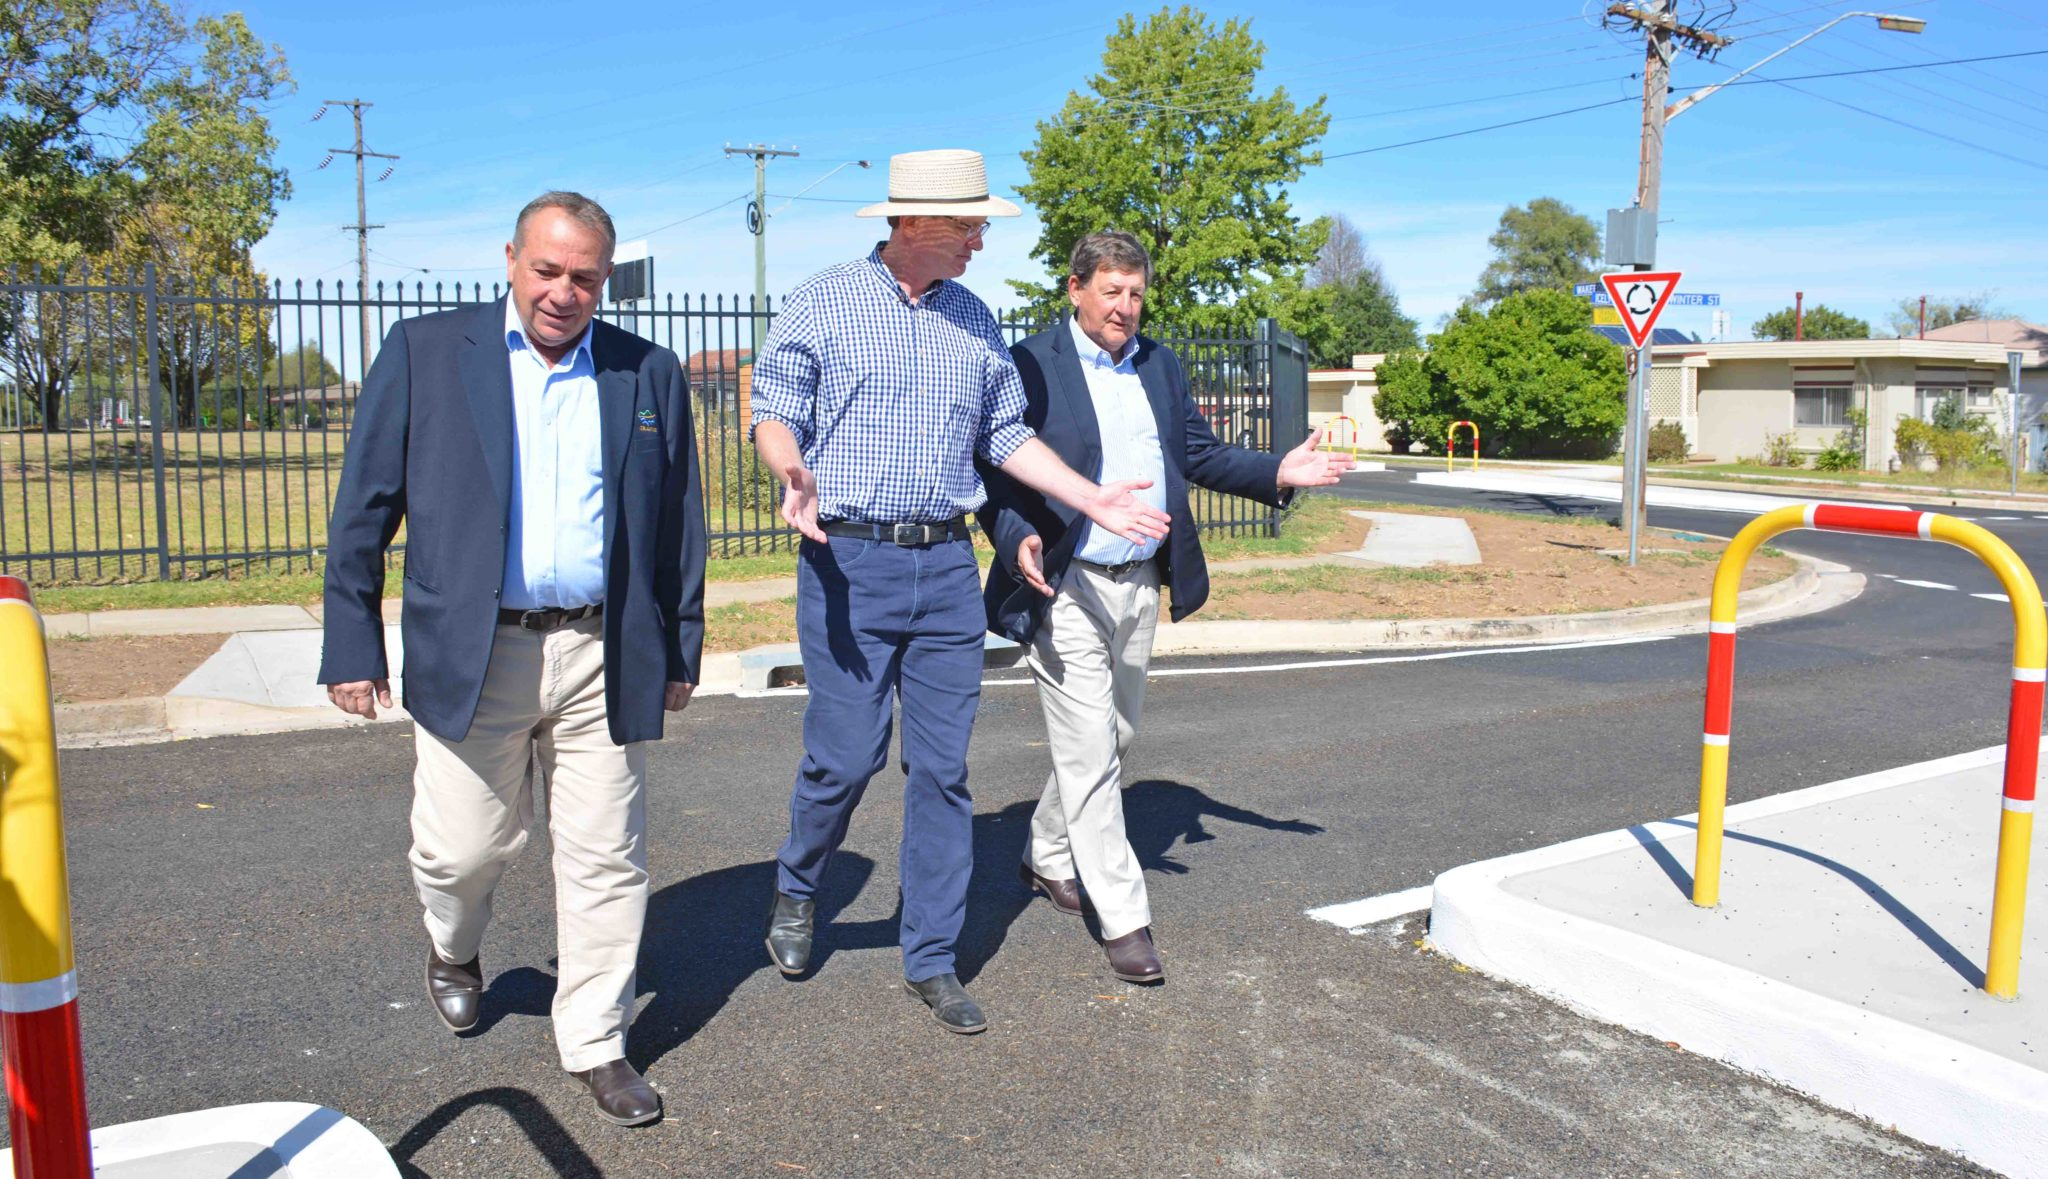 Sam Romano Andrew Gee Reg Kidd inspect new Canobolas High roundabout